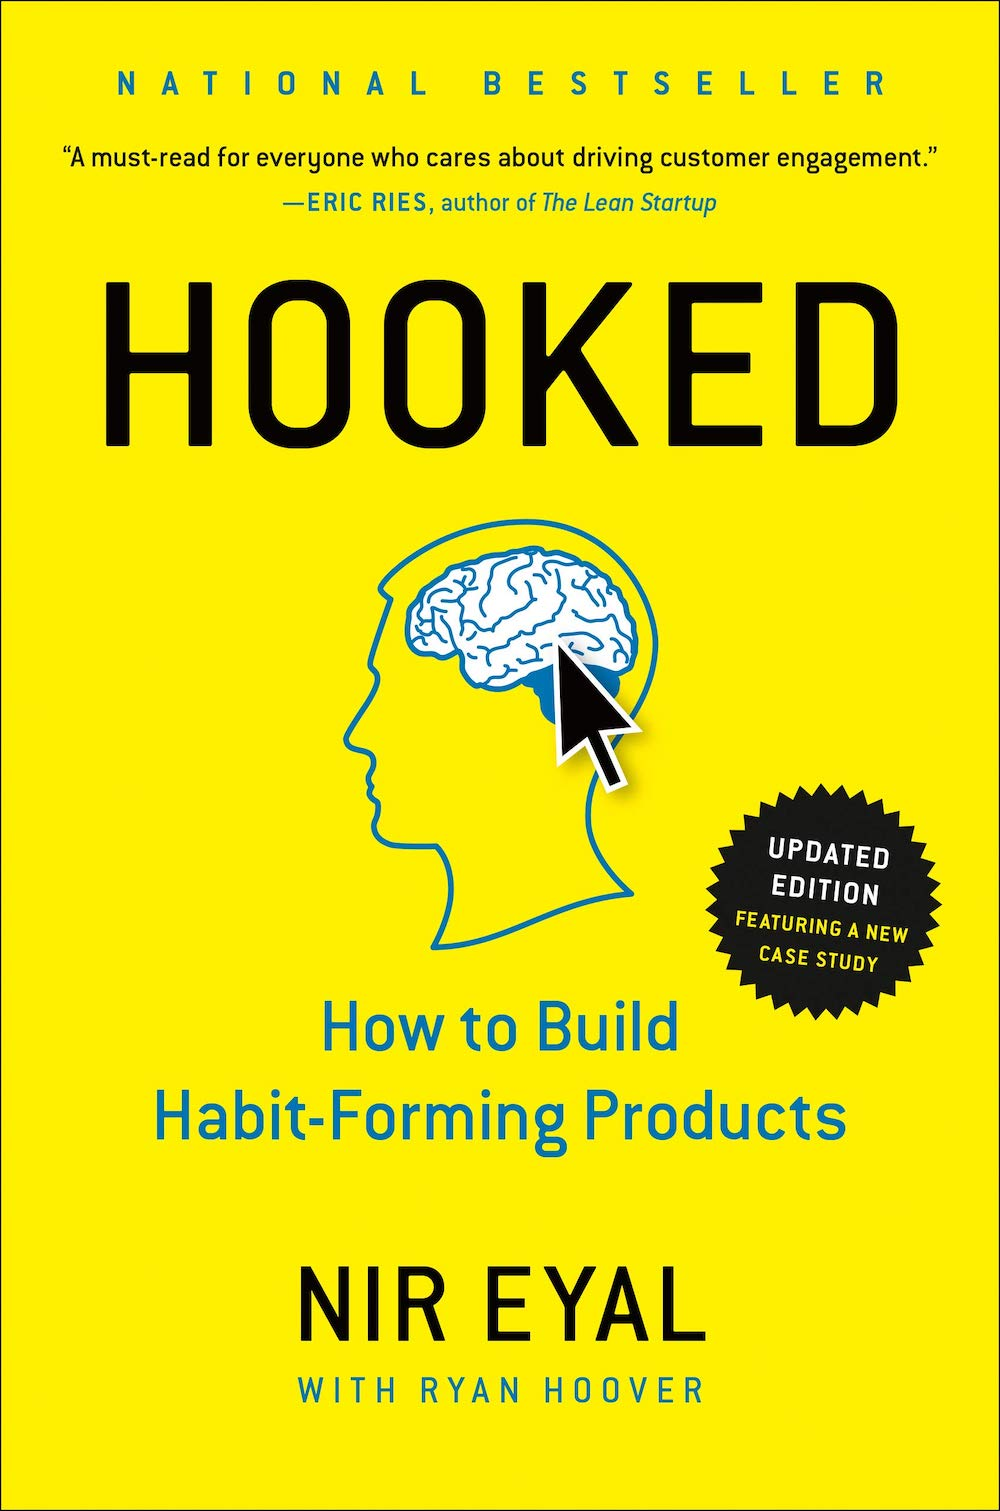 The cover of Hooked